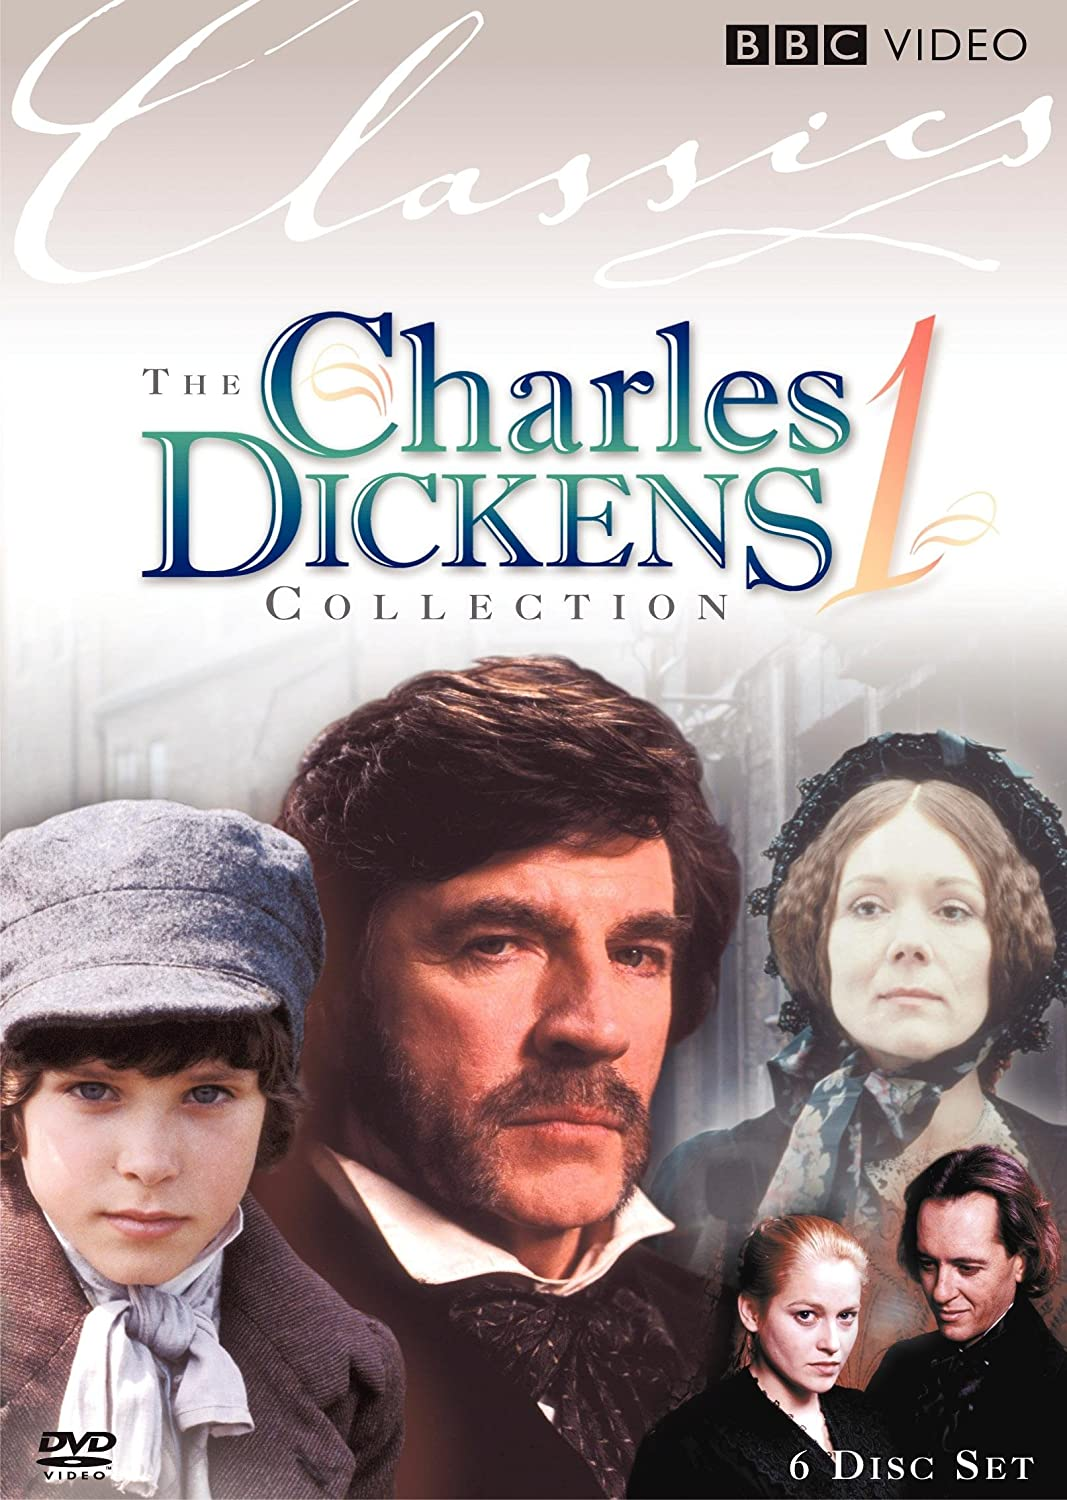 com the charles dickens collection volume oliver twist com the charles dickens collection volume 1 oliver twist martin chuzzlewit bleak house hard times great expectations our mutual friend